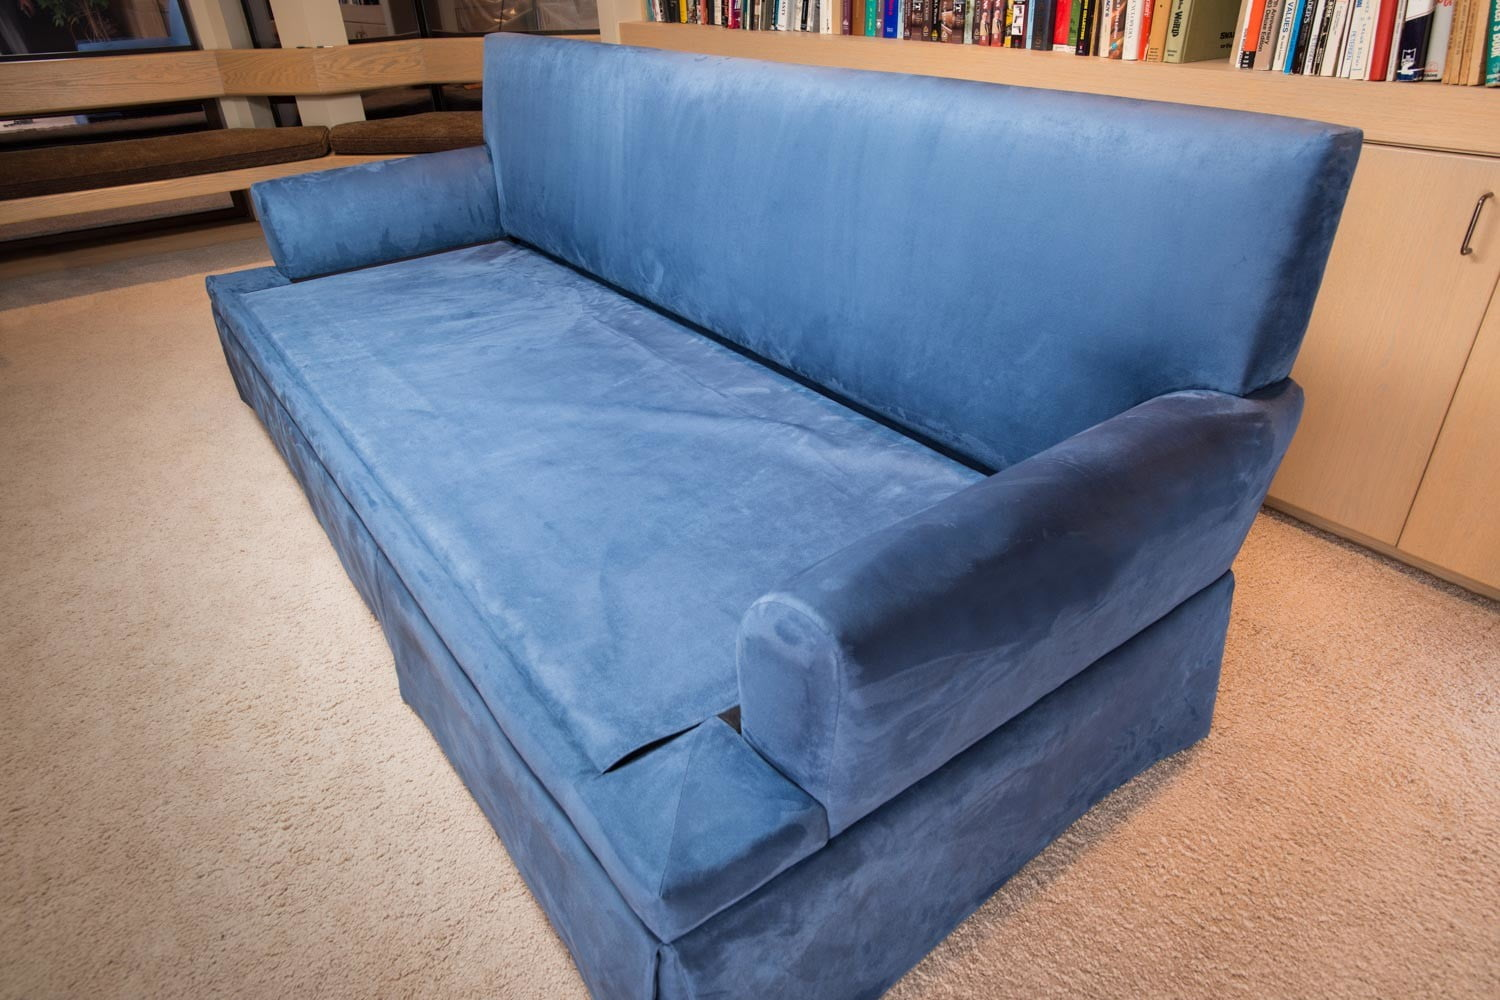 couchbunker bullet resistant sofa gun safe heracles research corporation 007